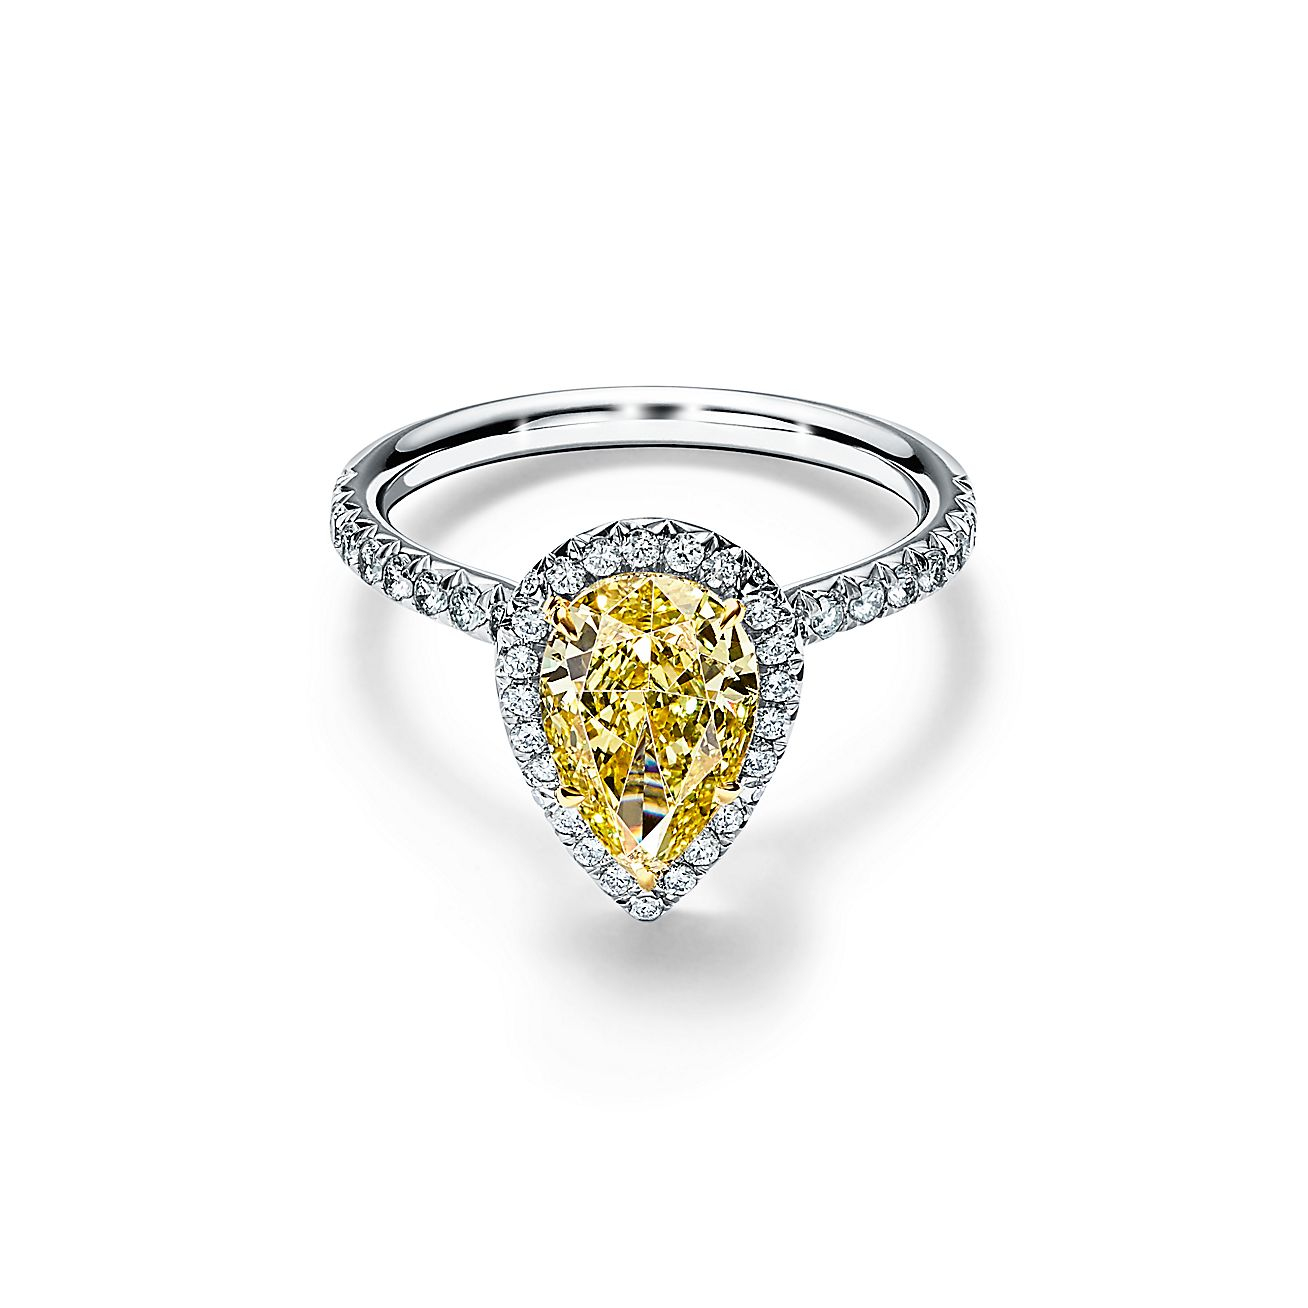 Tiffany Soleste Pear Shaped Halo Engagement Ring With A Diamond Platinum Band Tiffany Co